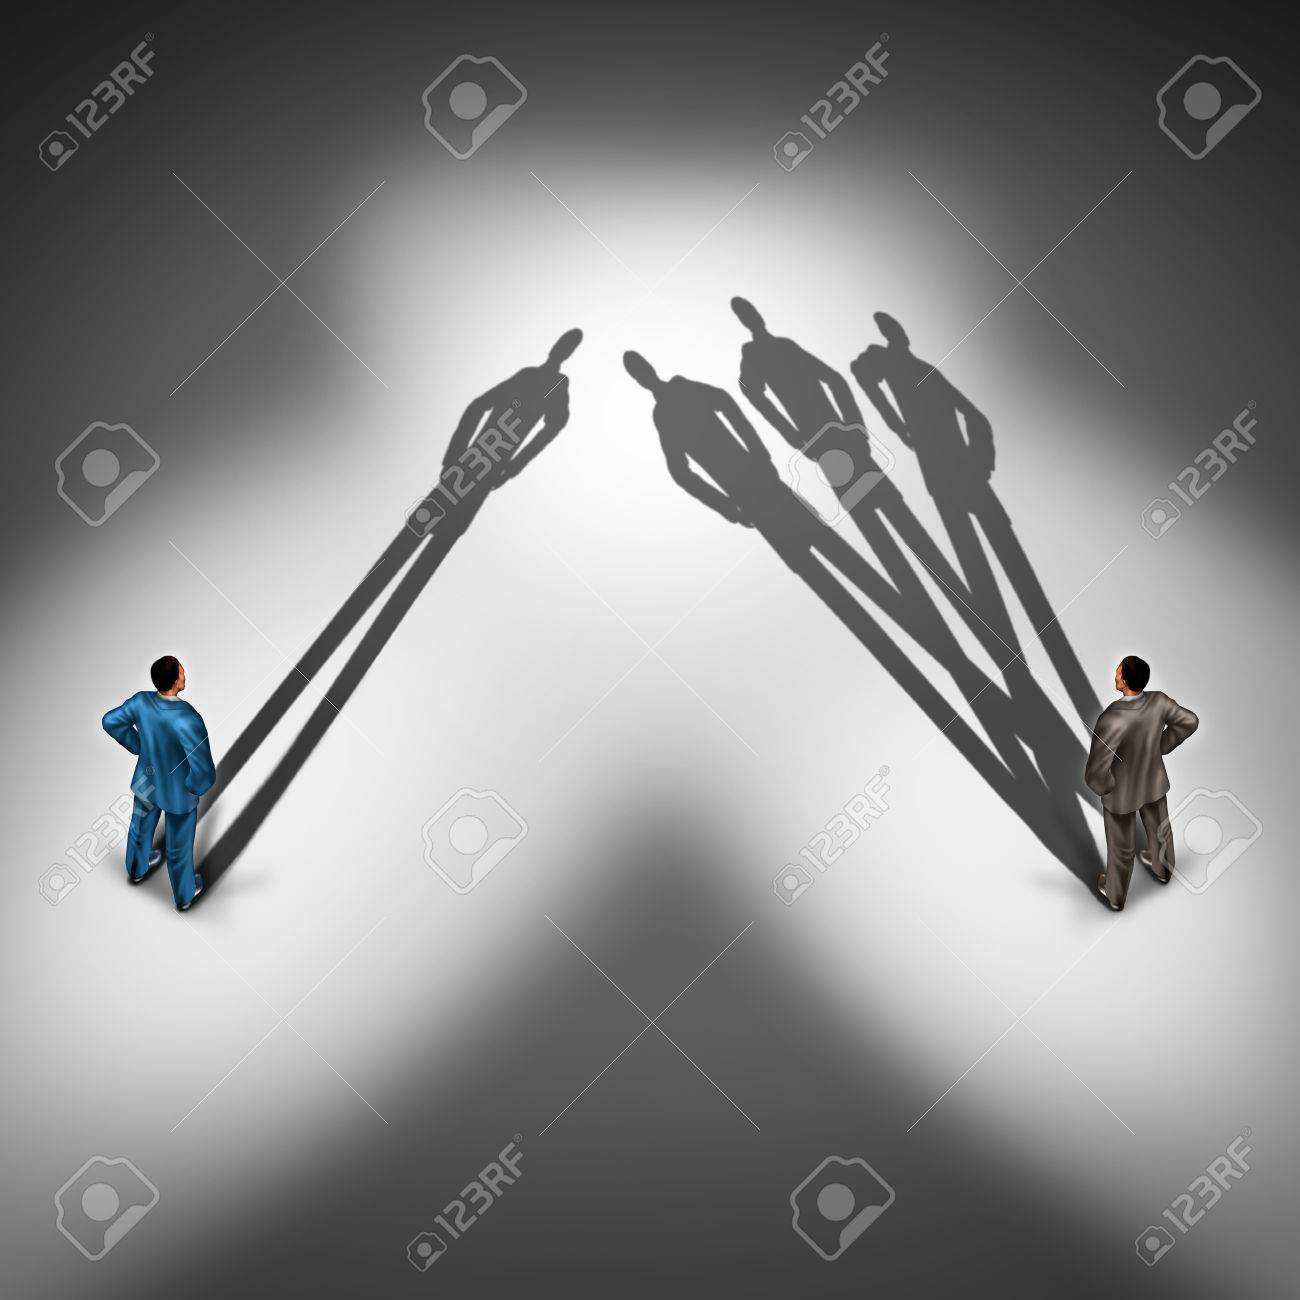 Worker productivity concept and productive employee symbol as two businessmen with one person with a single cast shadow and another business person with a group of shadows as a skillfull overachiever. - 47255126